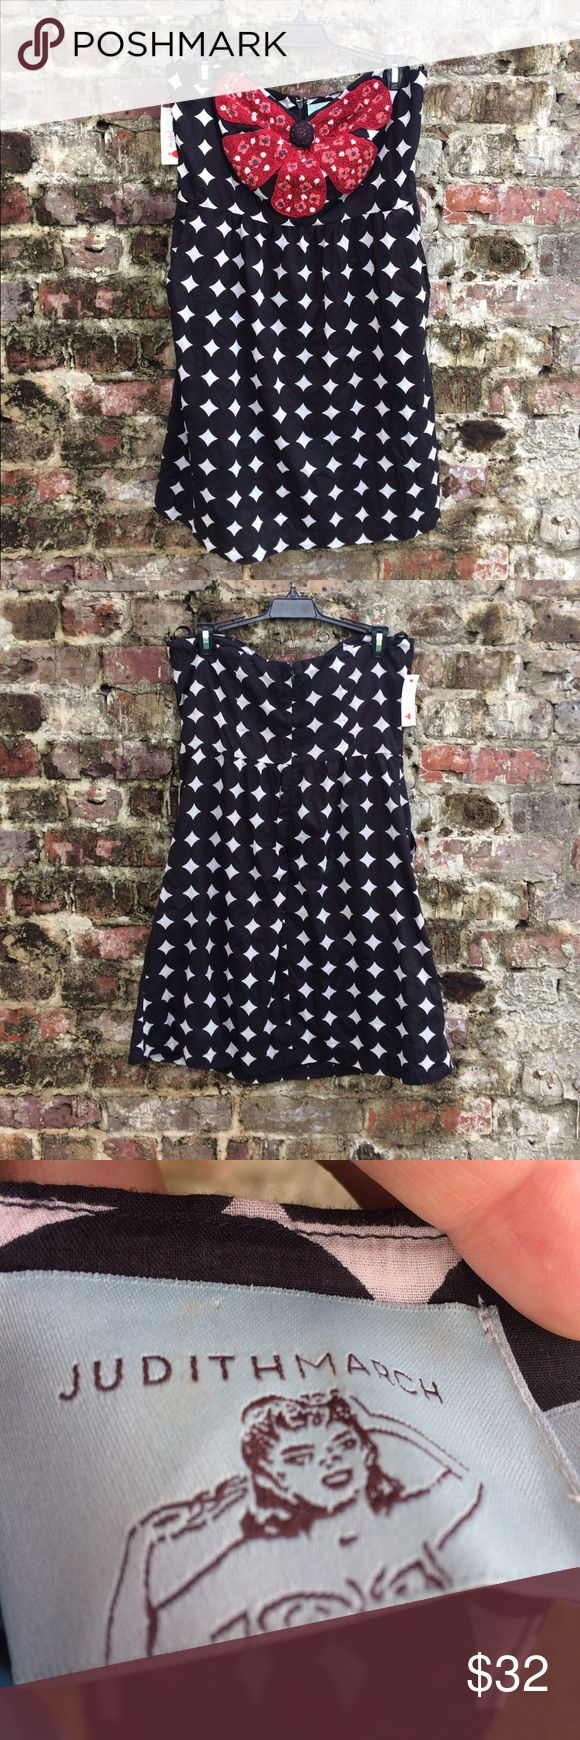 """NWT Judith March strapless dress NWT Judith March """"Talk of the Tailgate"""" strapless dress! Size large, black & white with red flower accent. Judith March Dresses Strapless"""